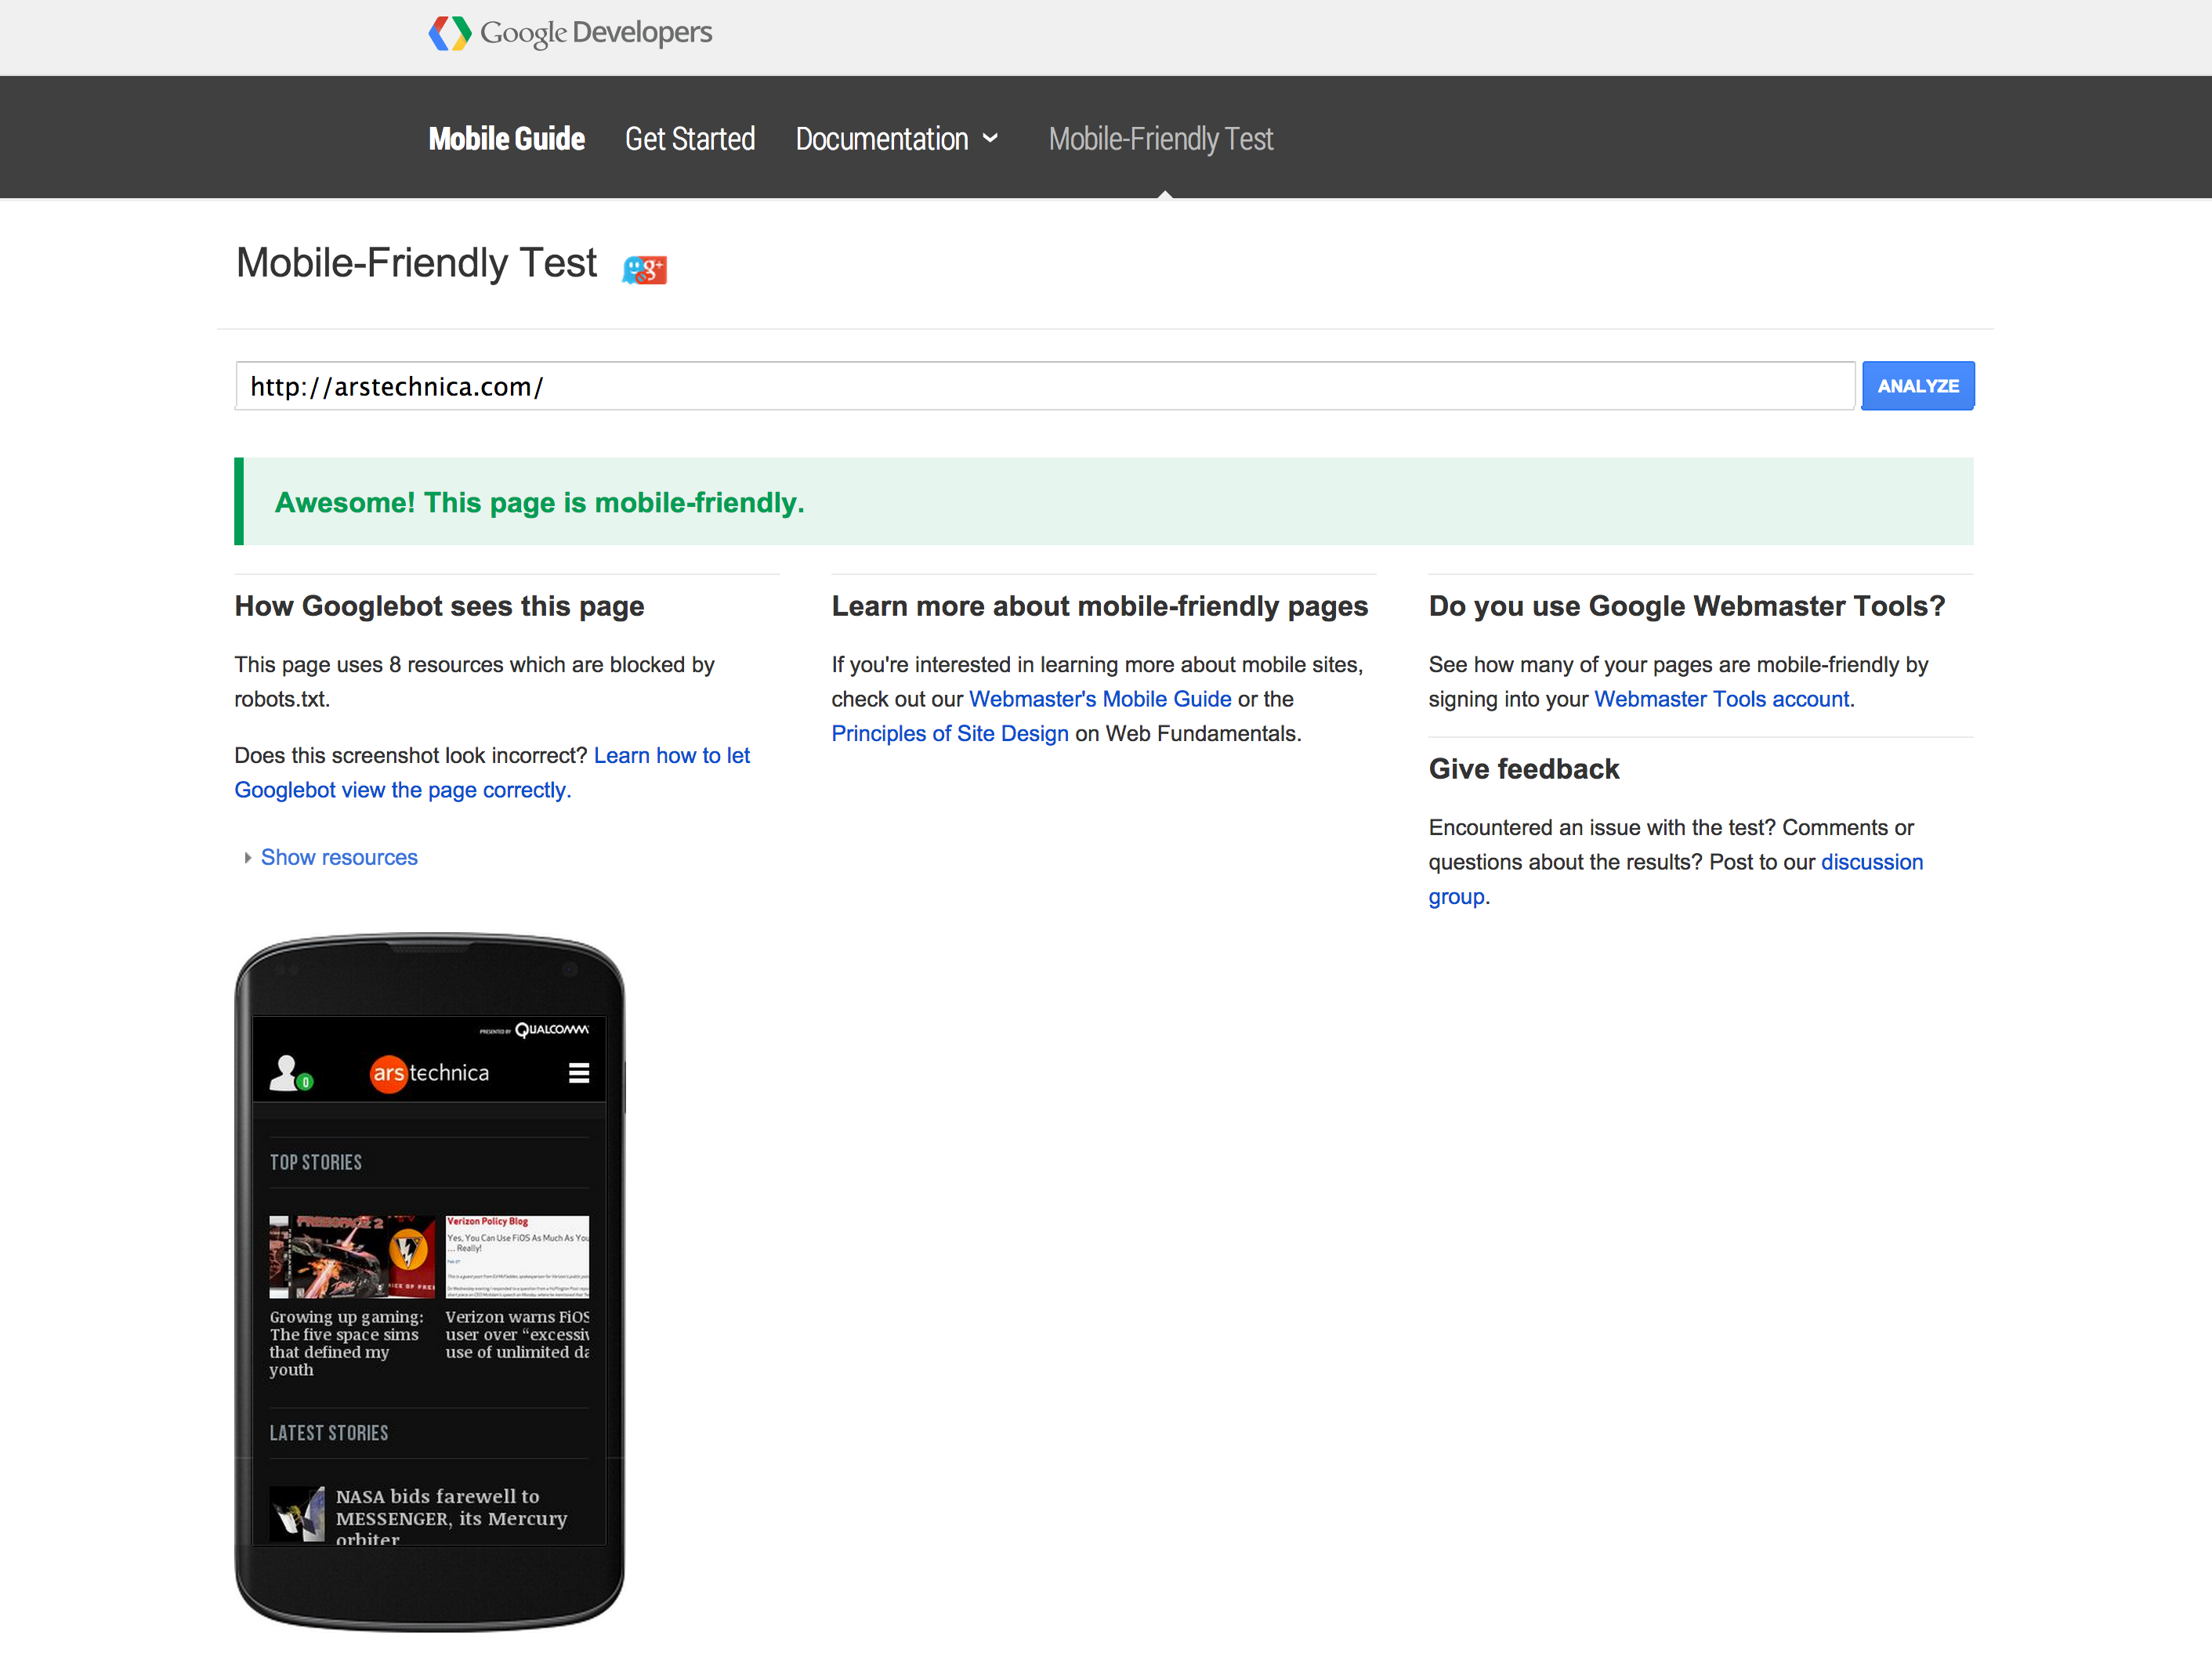 ArsTechnica gets Google's mobile-friendly seal of approval.